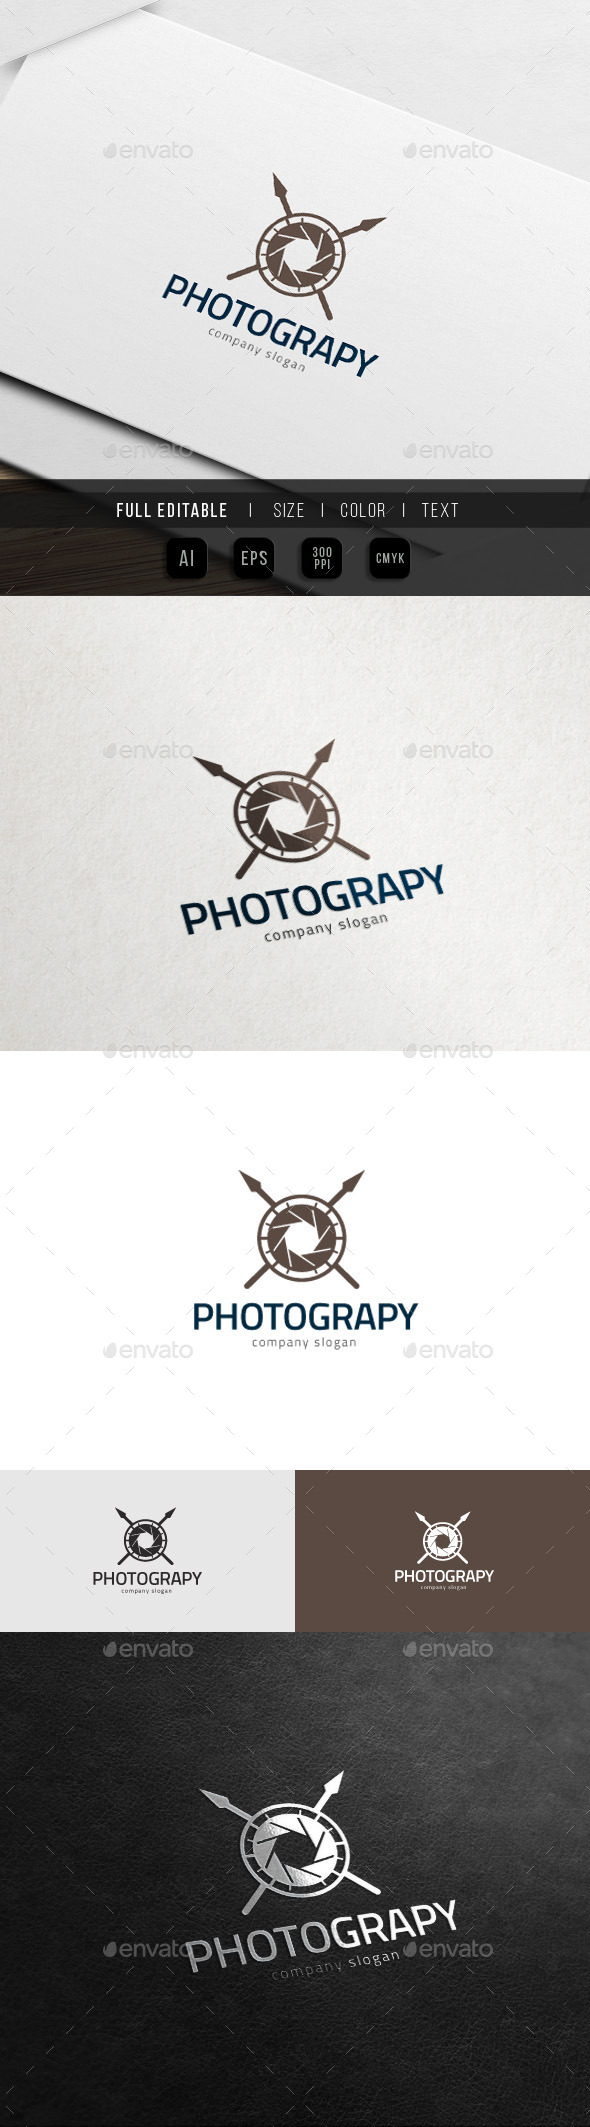 Camera War - Action Photography Logo - Objects Logo Templates